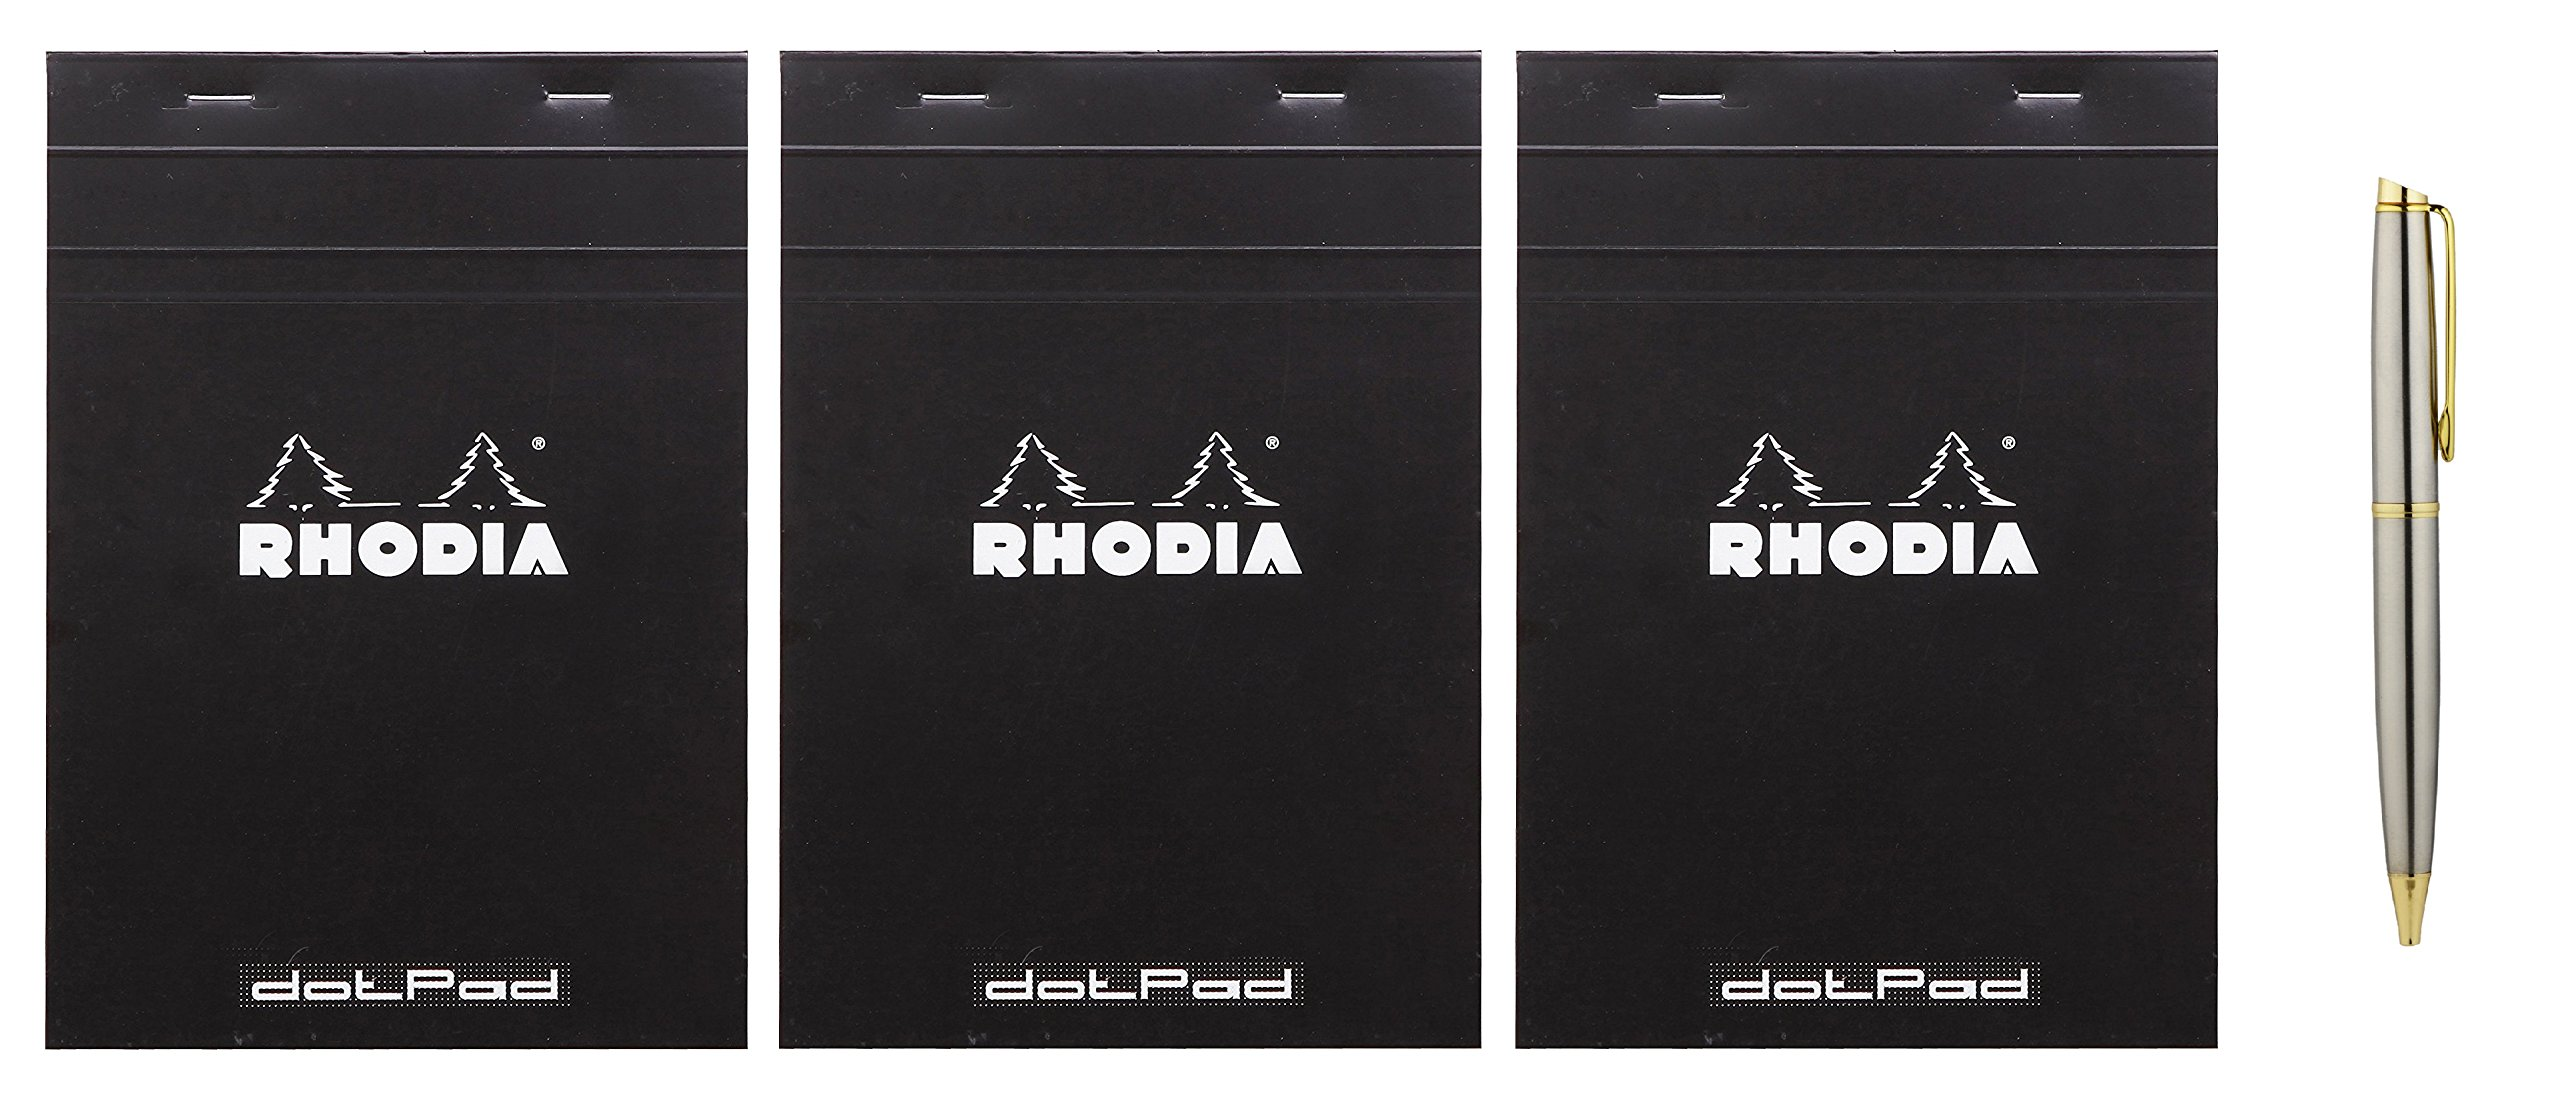 Rhodia No.16 A5 6 x 8 1/4 80 Sheet, Dot Pad, Black (16559), 3-Count Bundle with a Plexon Rollerball Pen